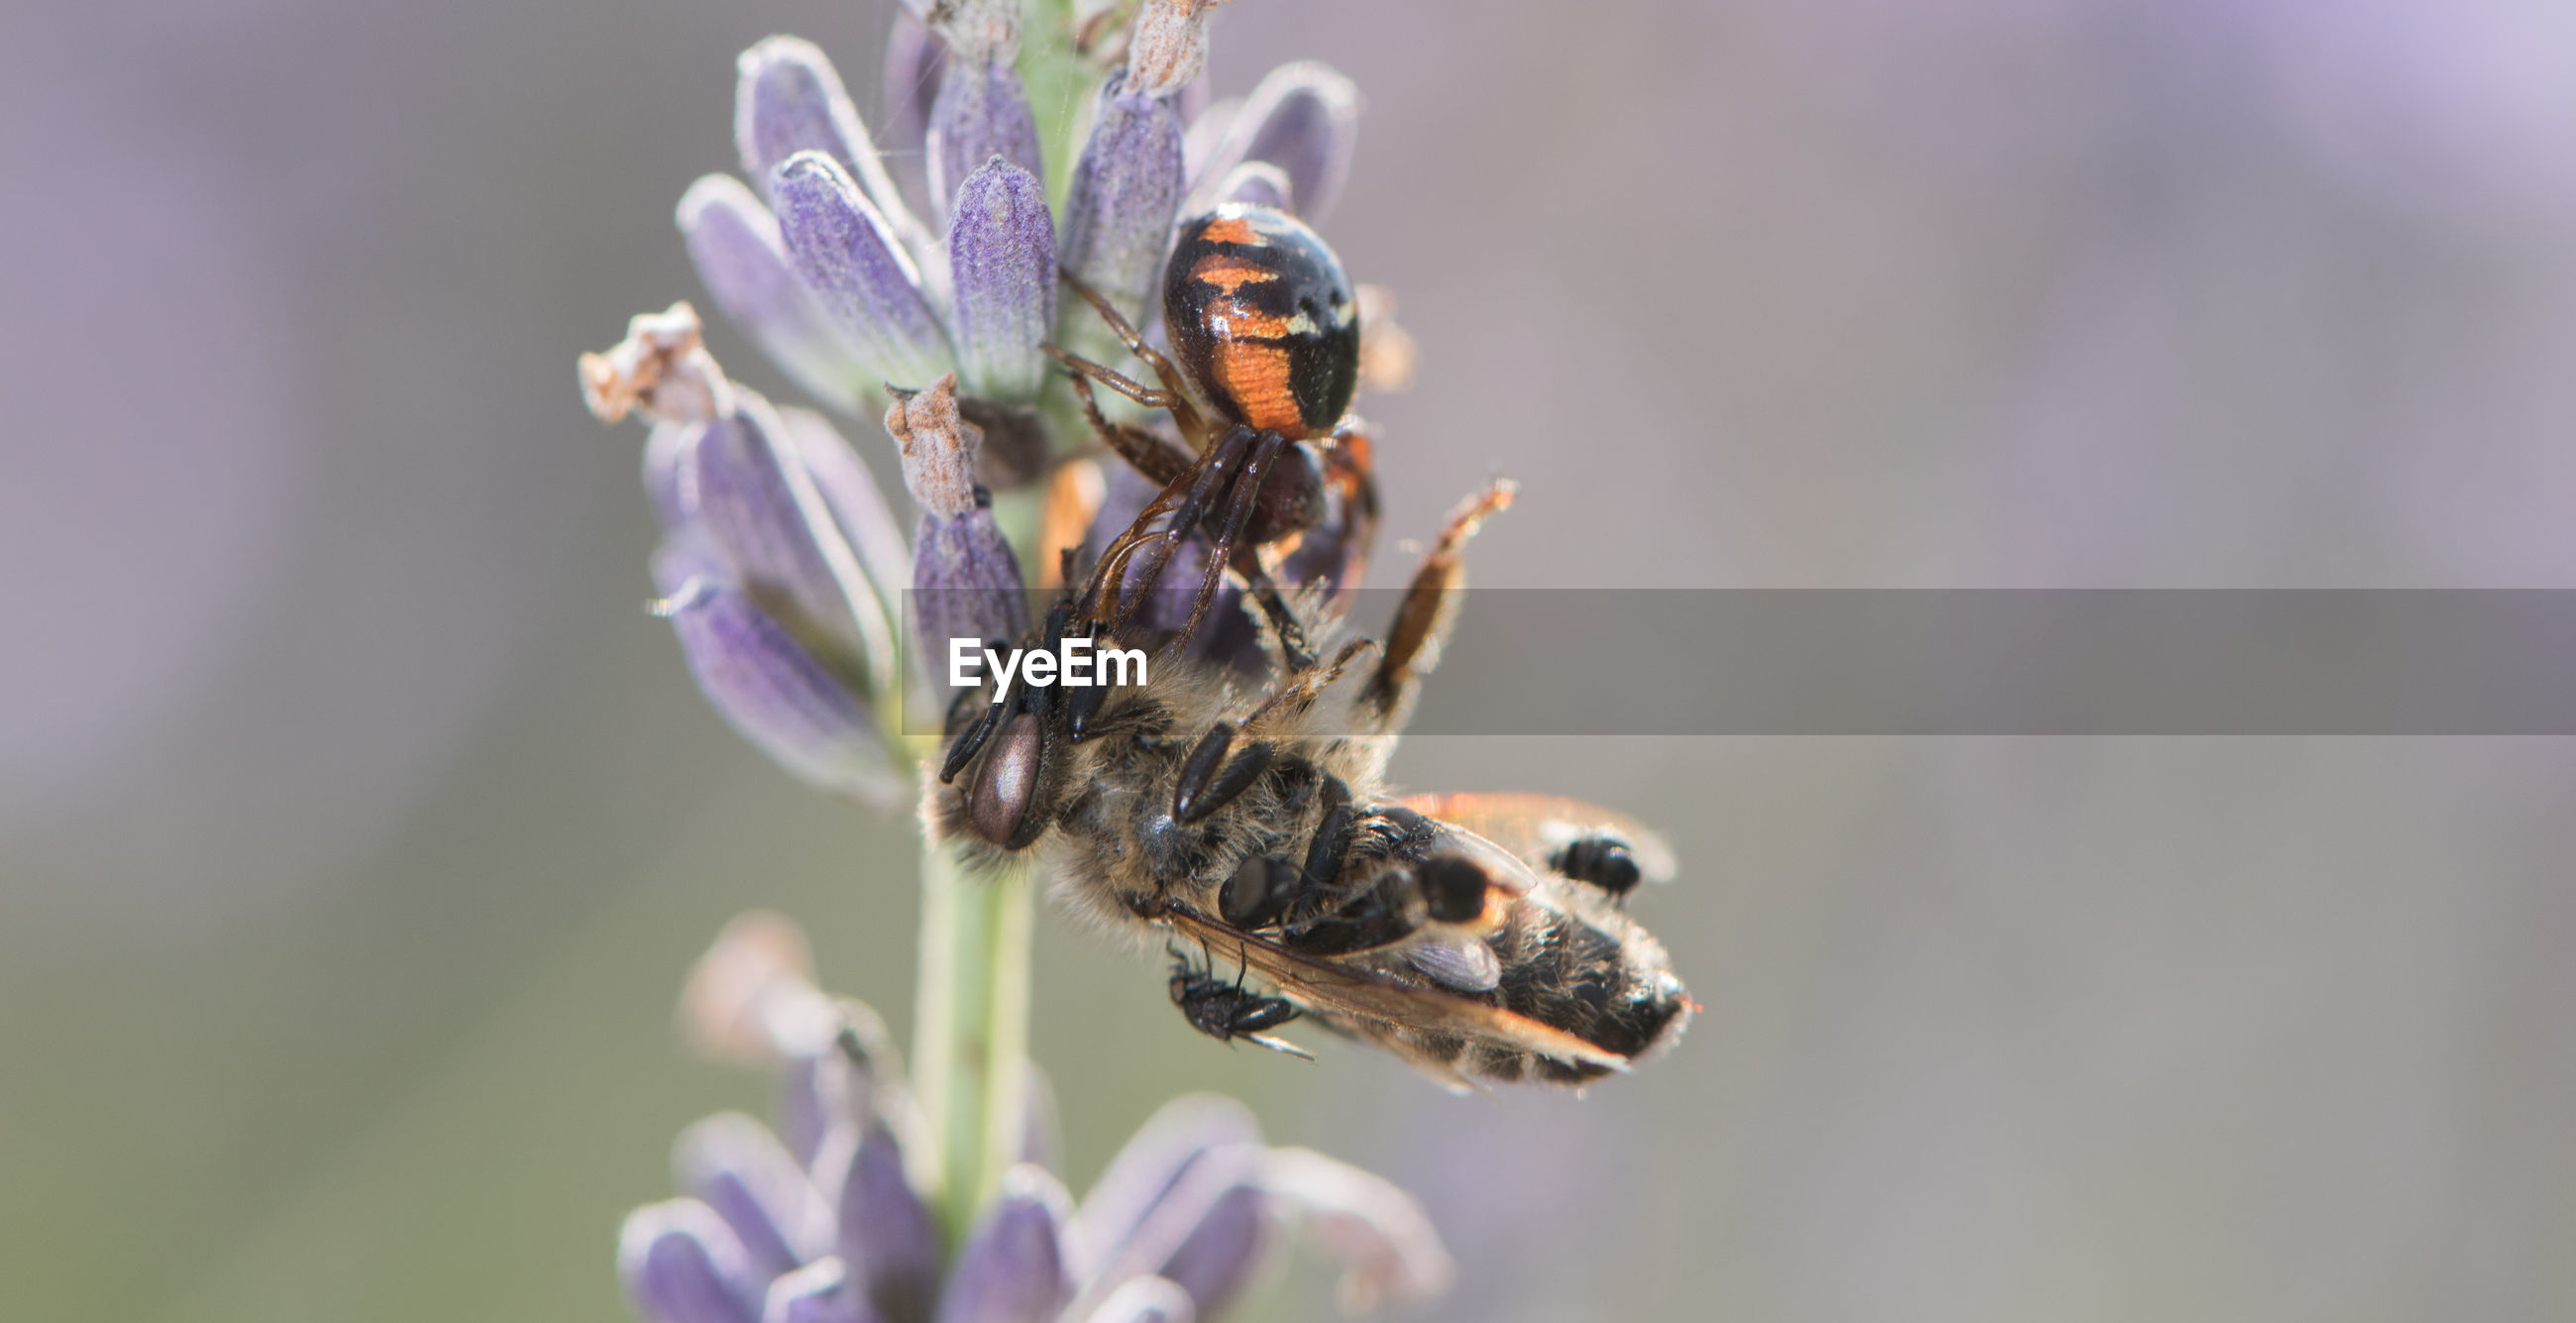 CLOSE-UP OF HONEY BEE POLLINATING ON LAVENDER